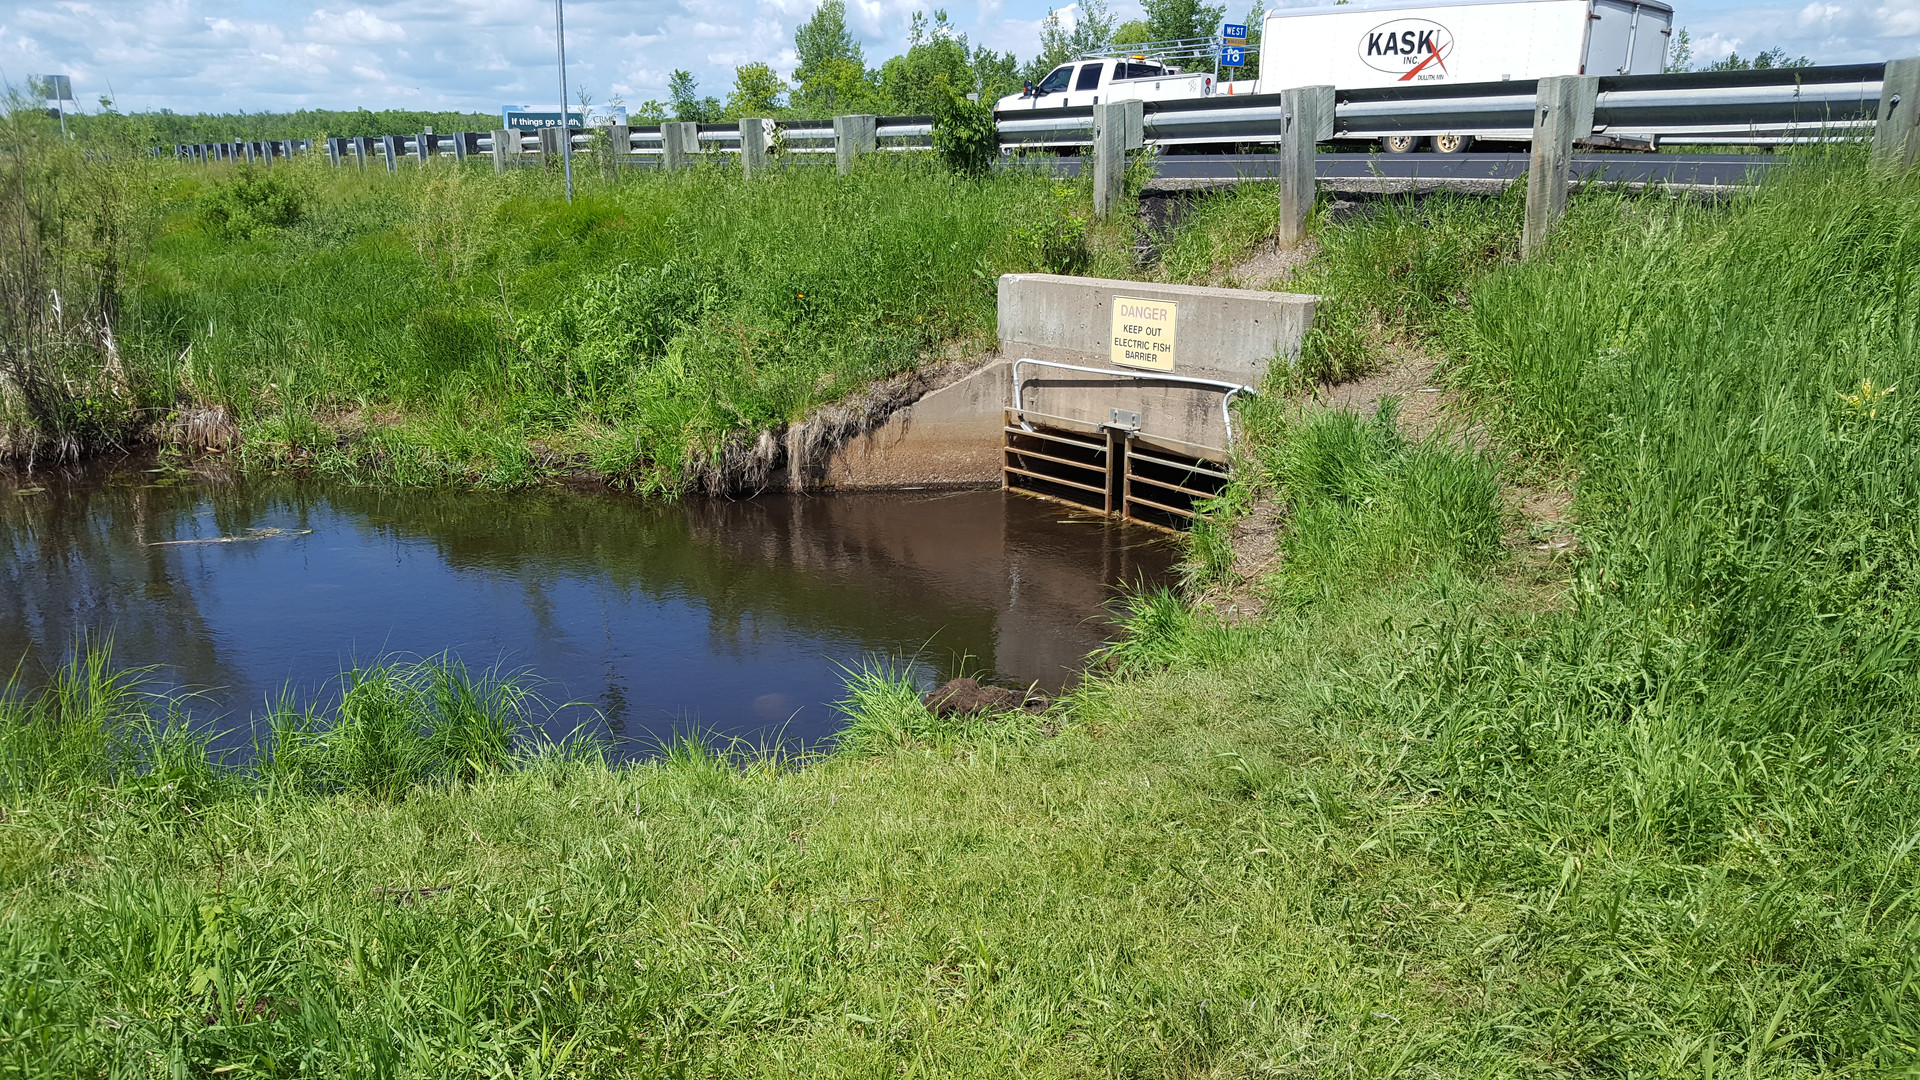 2017 Update to electric fish barrier